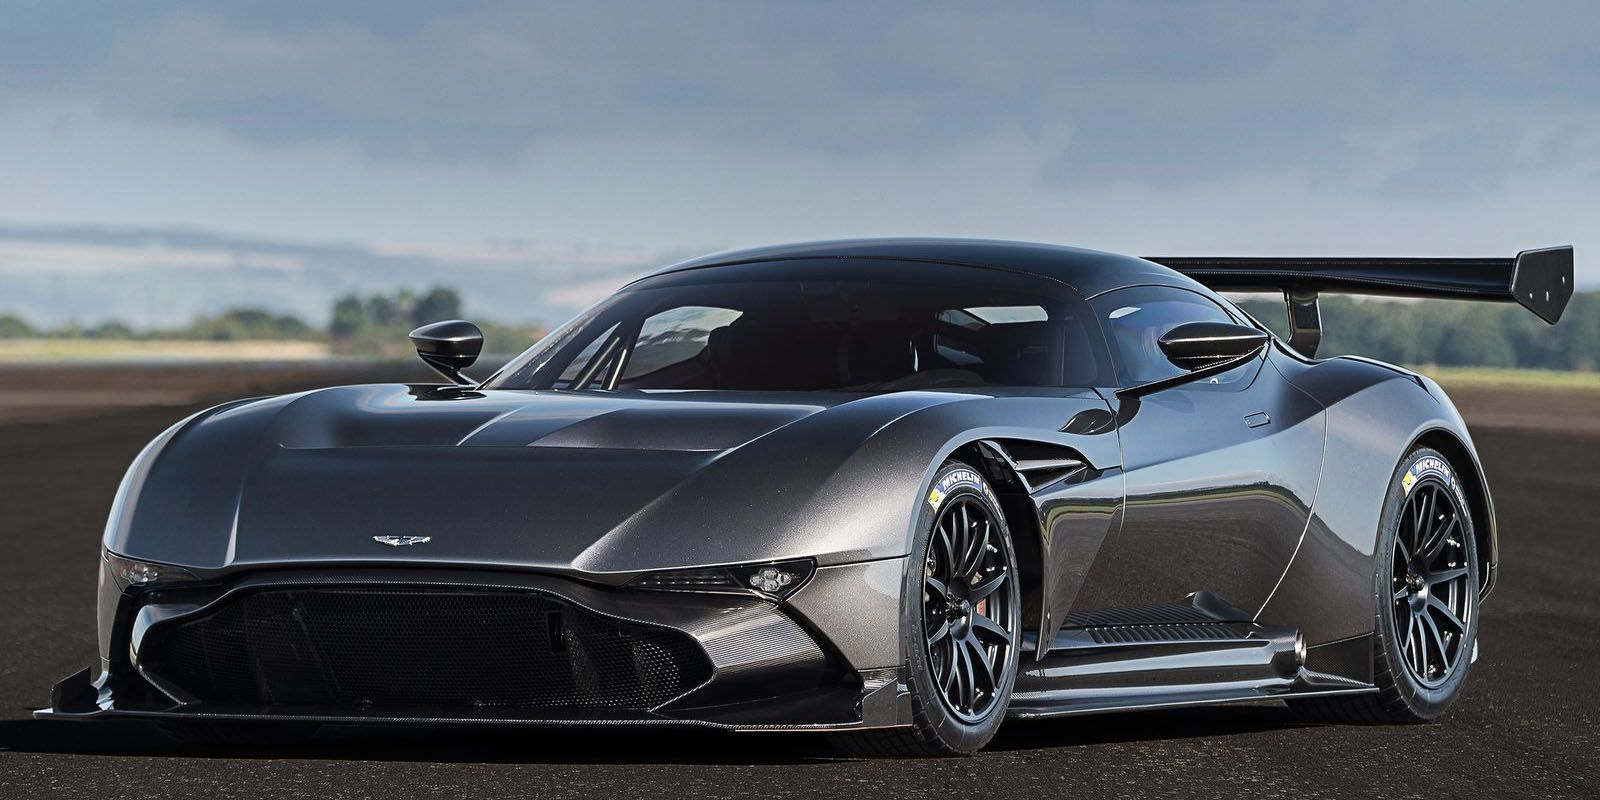 Aston Martin Vulcan For Sale For A Mere 3 4 Million